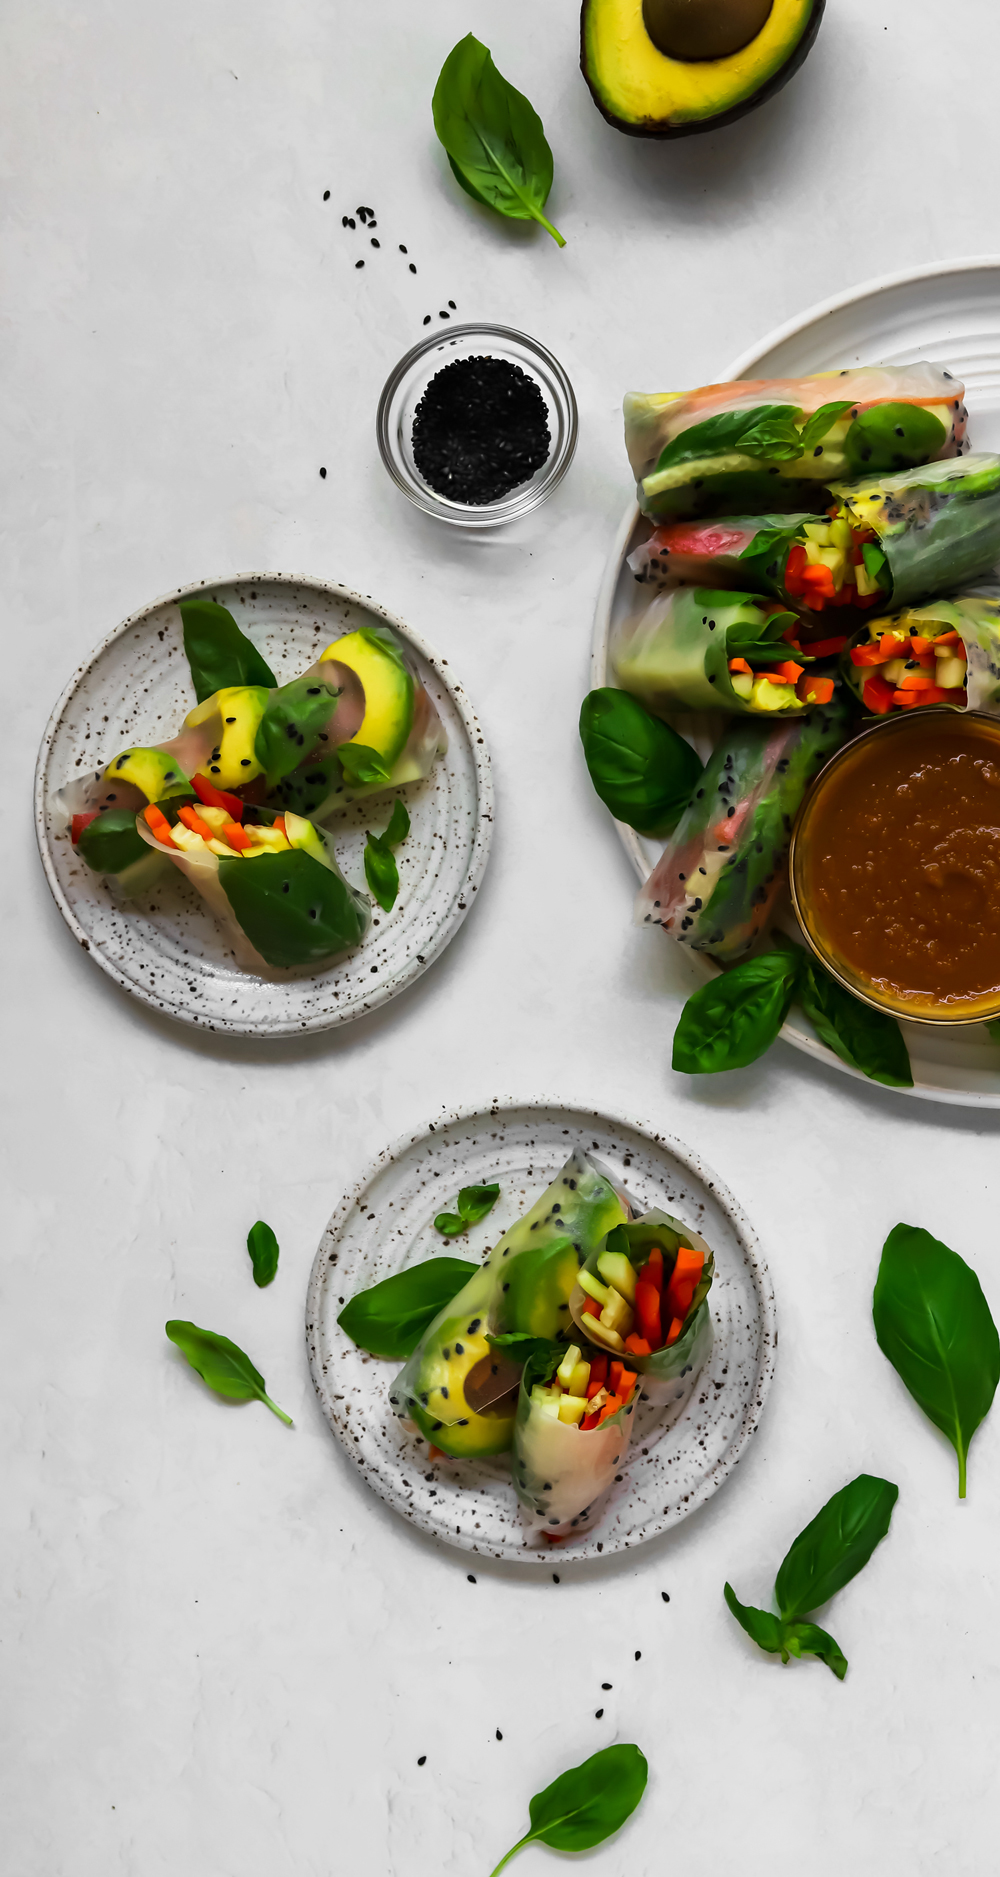 Basil summer rolls cut in half on small white speckled plates with a small bowl of black sesame seeds.